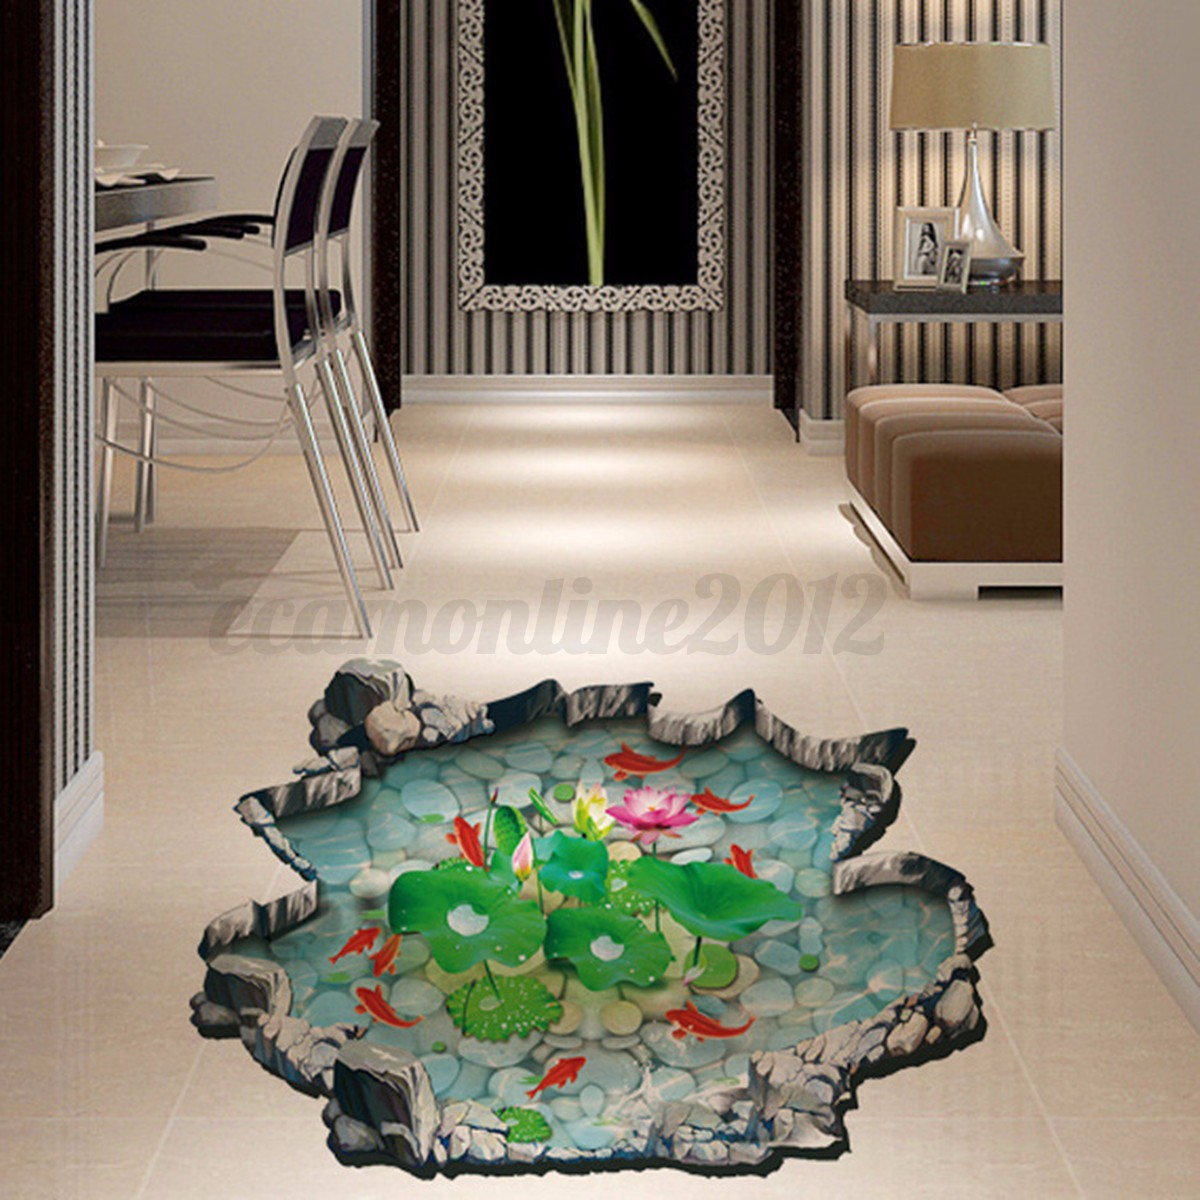 abnehmbare 3d fische teich wand aufkleber boden wandkunst. Black Bedroom Furniture Sets. Home Design Ideas